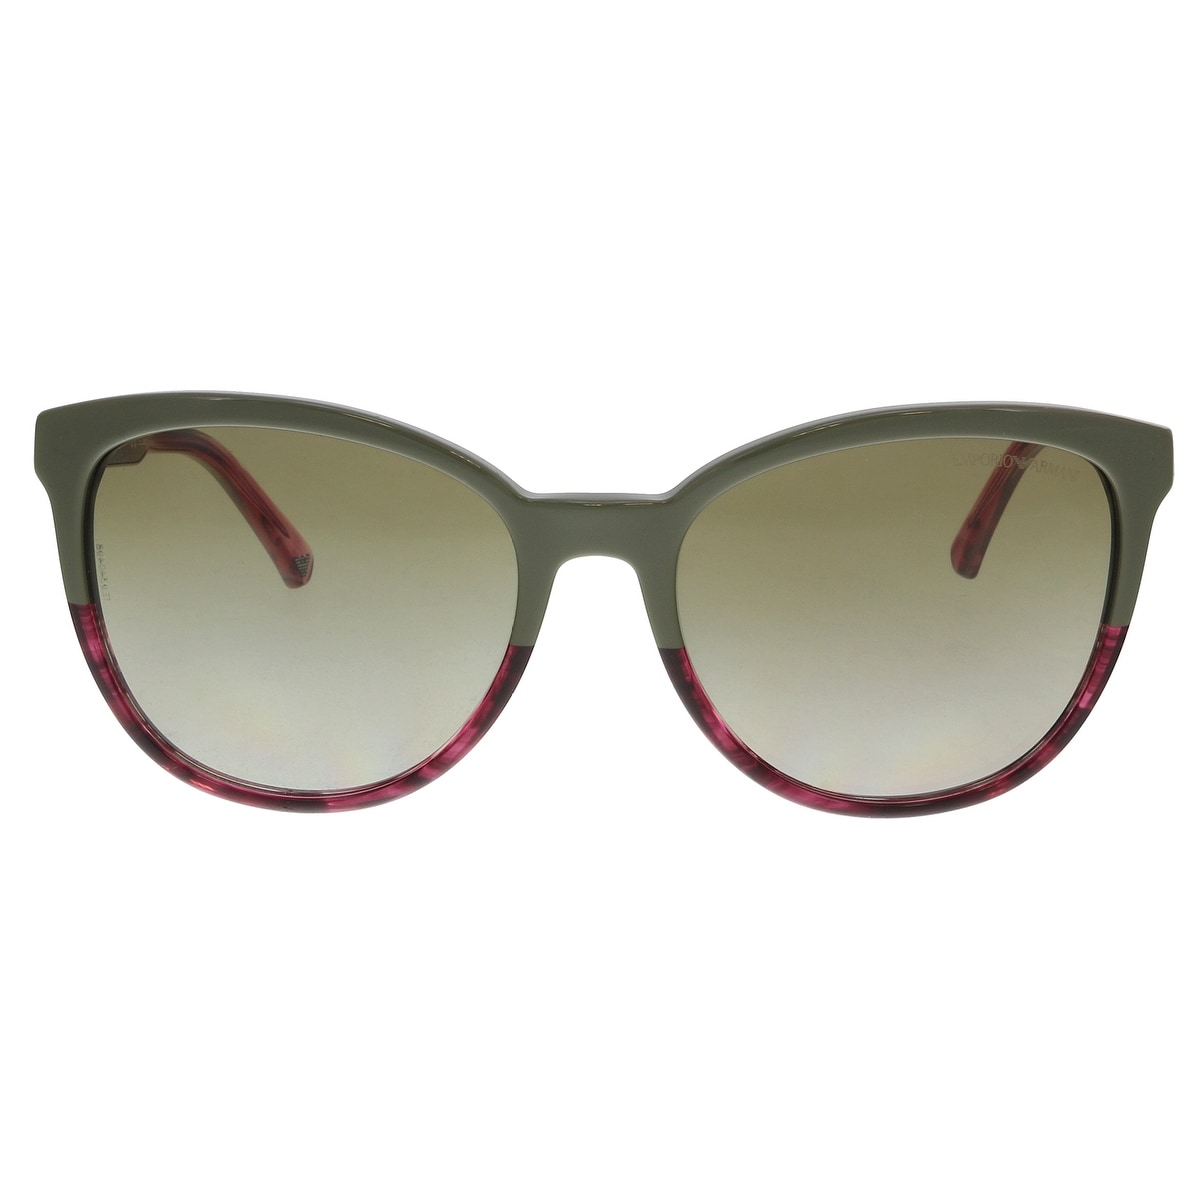 b0a221b4c2 Shop Emporio Armani EA4101 556913 Military  Striped Pink Cat Eye Sunglasses  - 56-17-140 - On Sale - Free Shipping Today - Overstock - 21335368